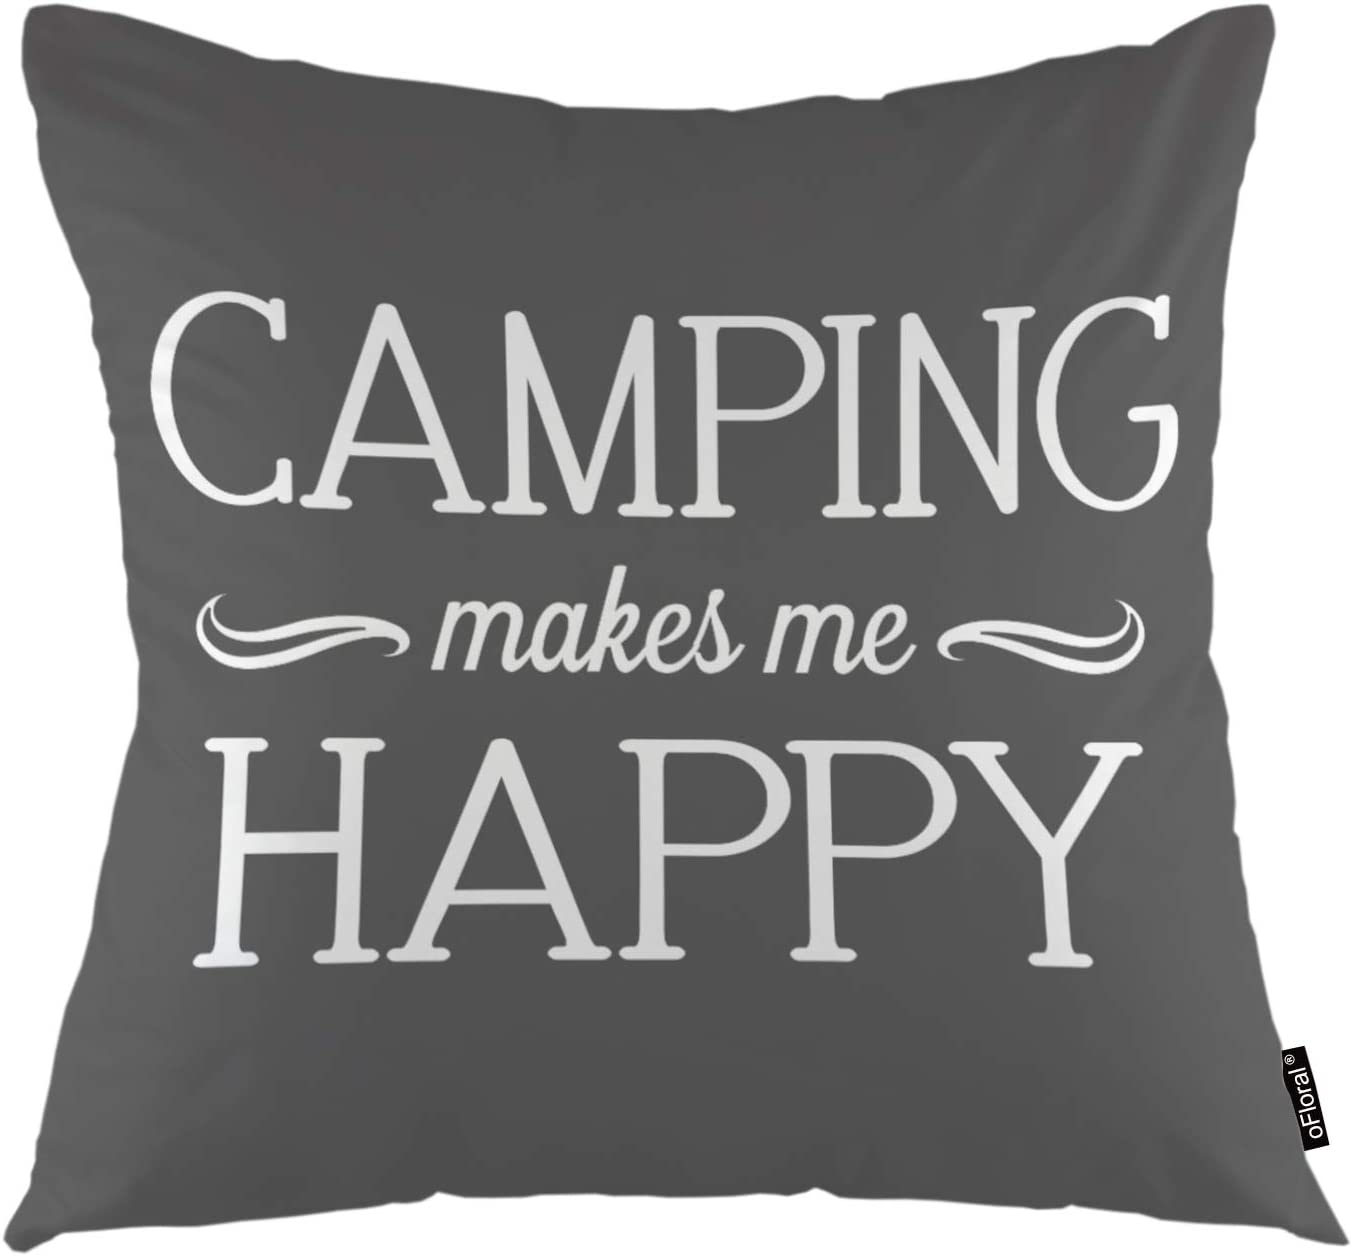 """oFloral Movatational Quote Throw Pillow Covers Camping Makes Me Happy Calligraphy Letter Decorative Square Pillow Case 18""""X18"""" Pillowcase Home Decor for for Sofa Bedroom Livingroom"""